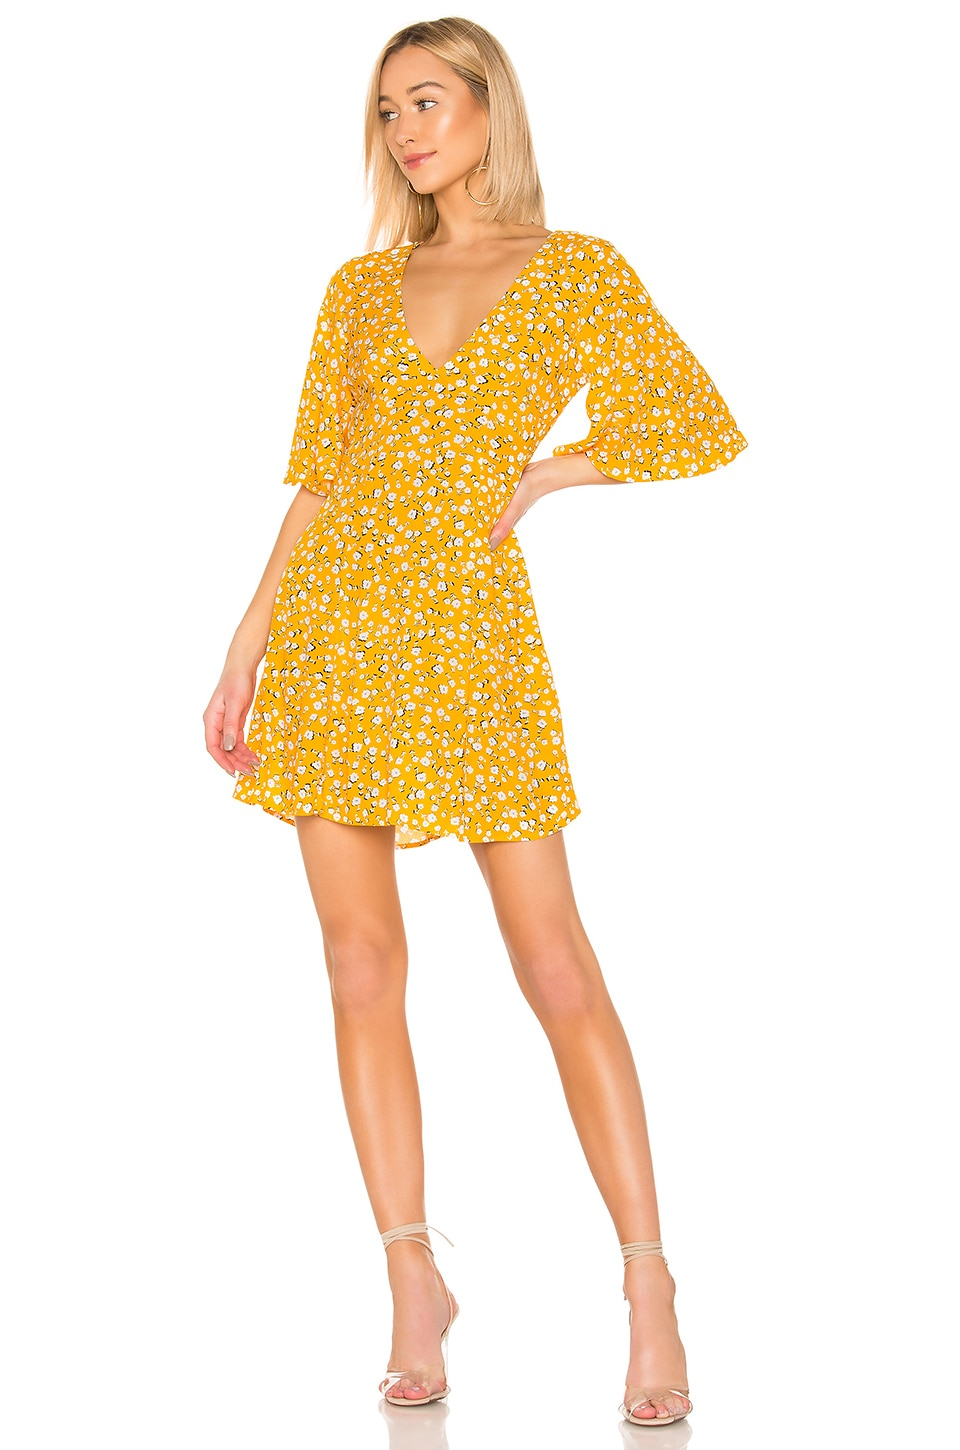 MINKPINK Summer Daisy Tea Dress in Golden Yellow